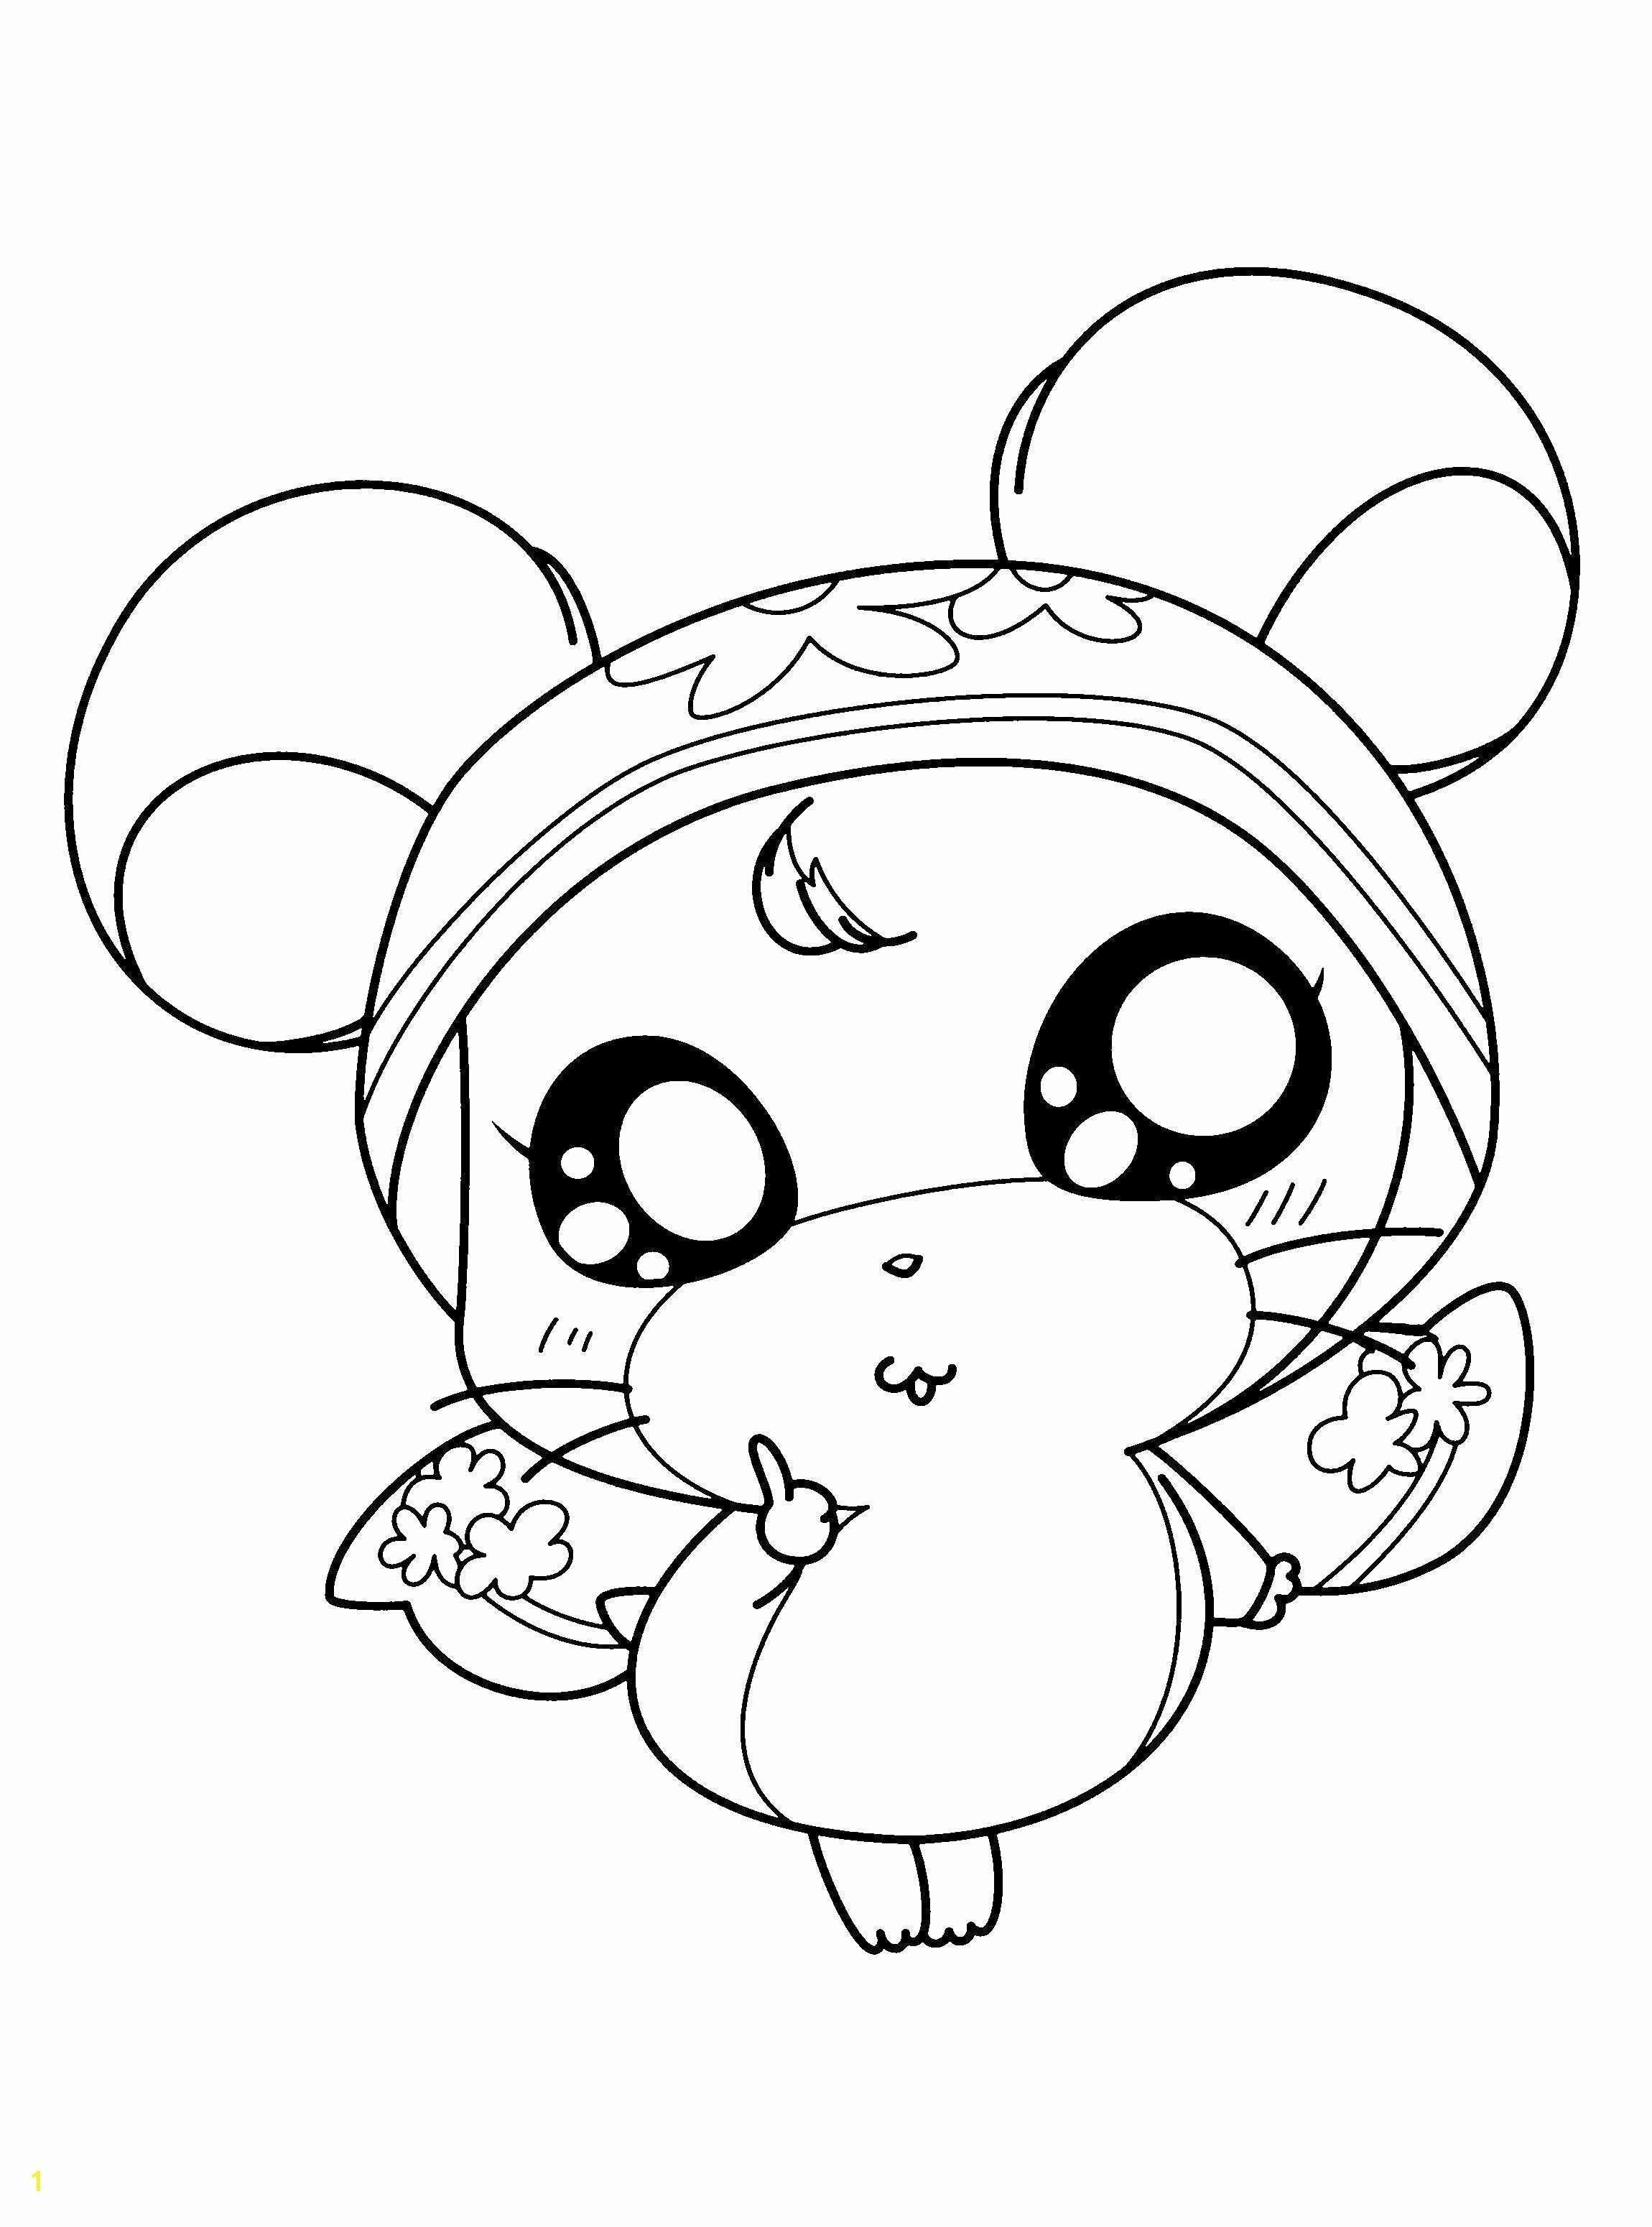 Crayola Coloring Pages Winter Unique Awesome Disney Winter